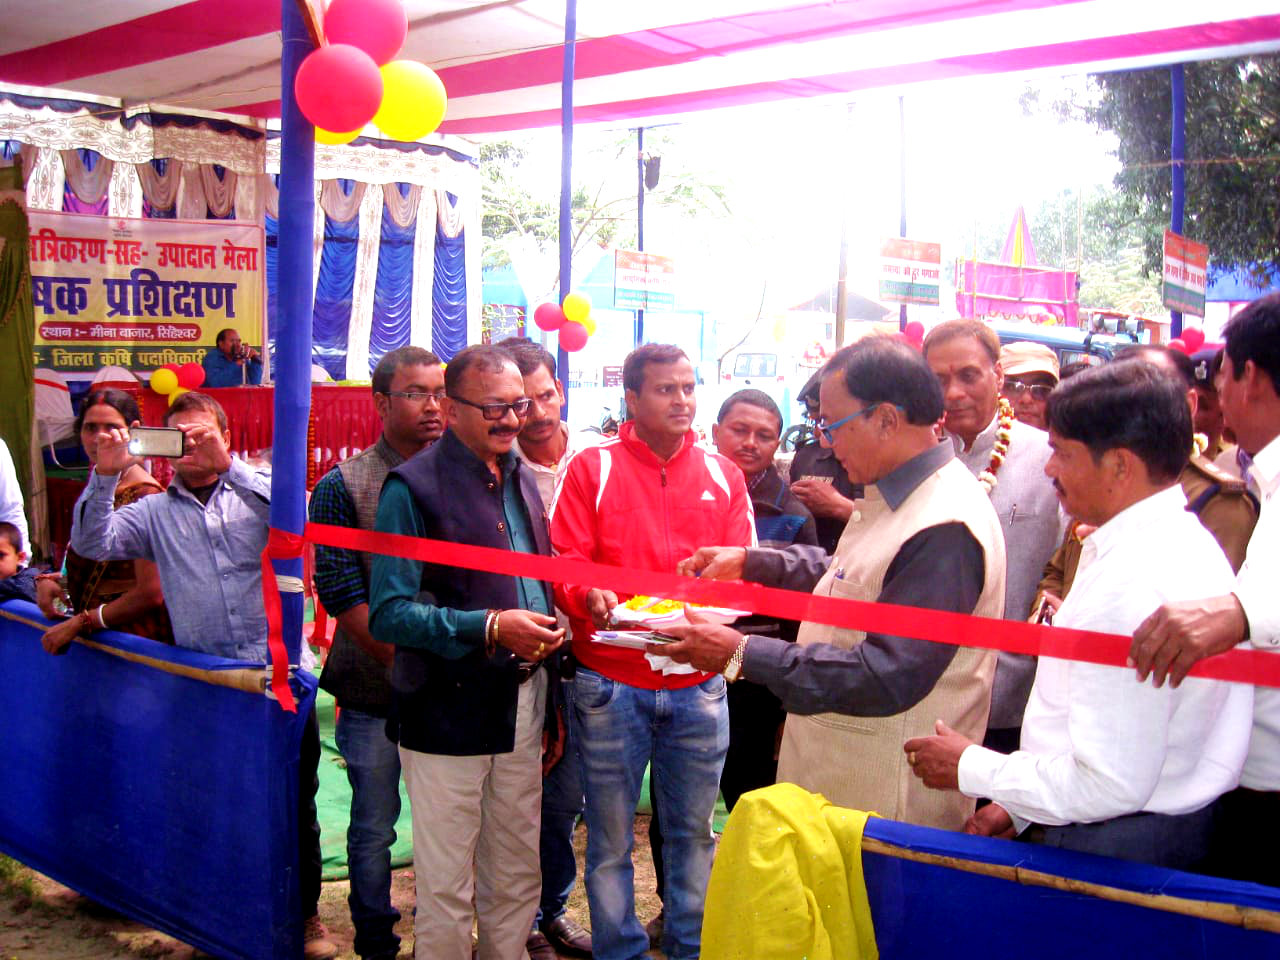 Dr.Madhepuri inaugurating Agricultural Meena Bazar in presence of District & Session Judge Manmohan Sharma, SP Sanjay Kumar (IPS), Pariyojna Padadhikari (ATMA) Ranjan Balan & others at Singheshwar Mela .